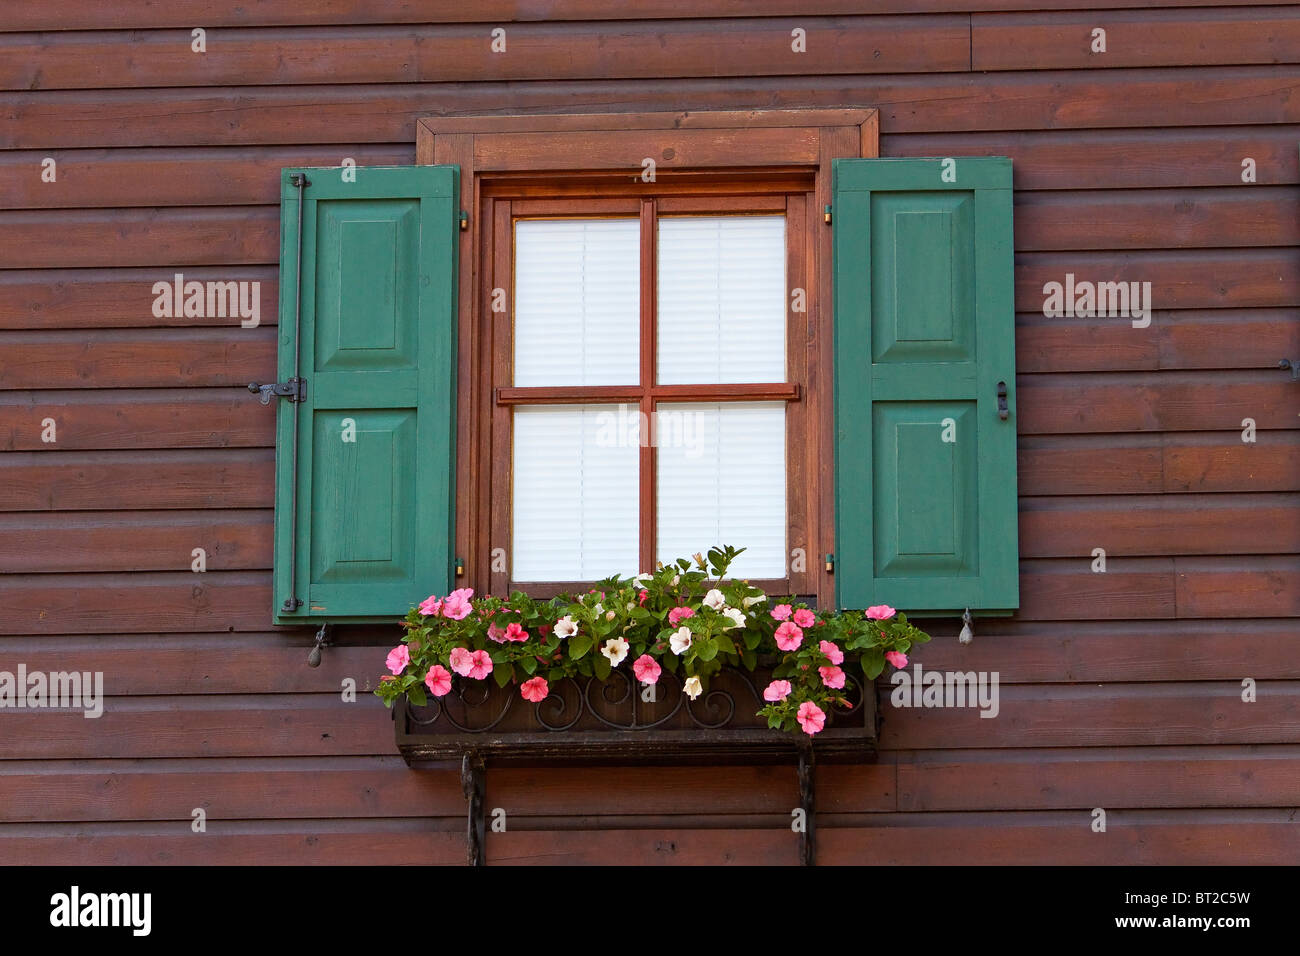 Austria Kitzbuhel Traditional Wood Clad House and Window - Stock Image